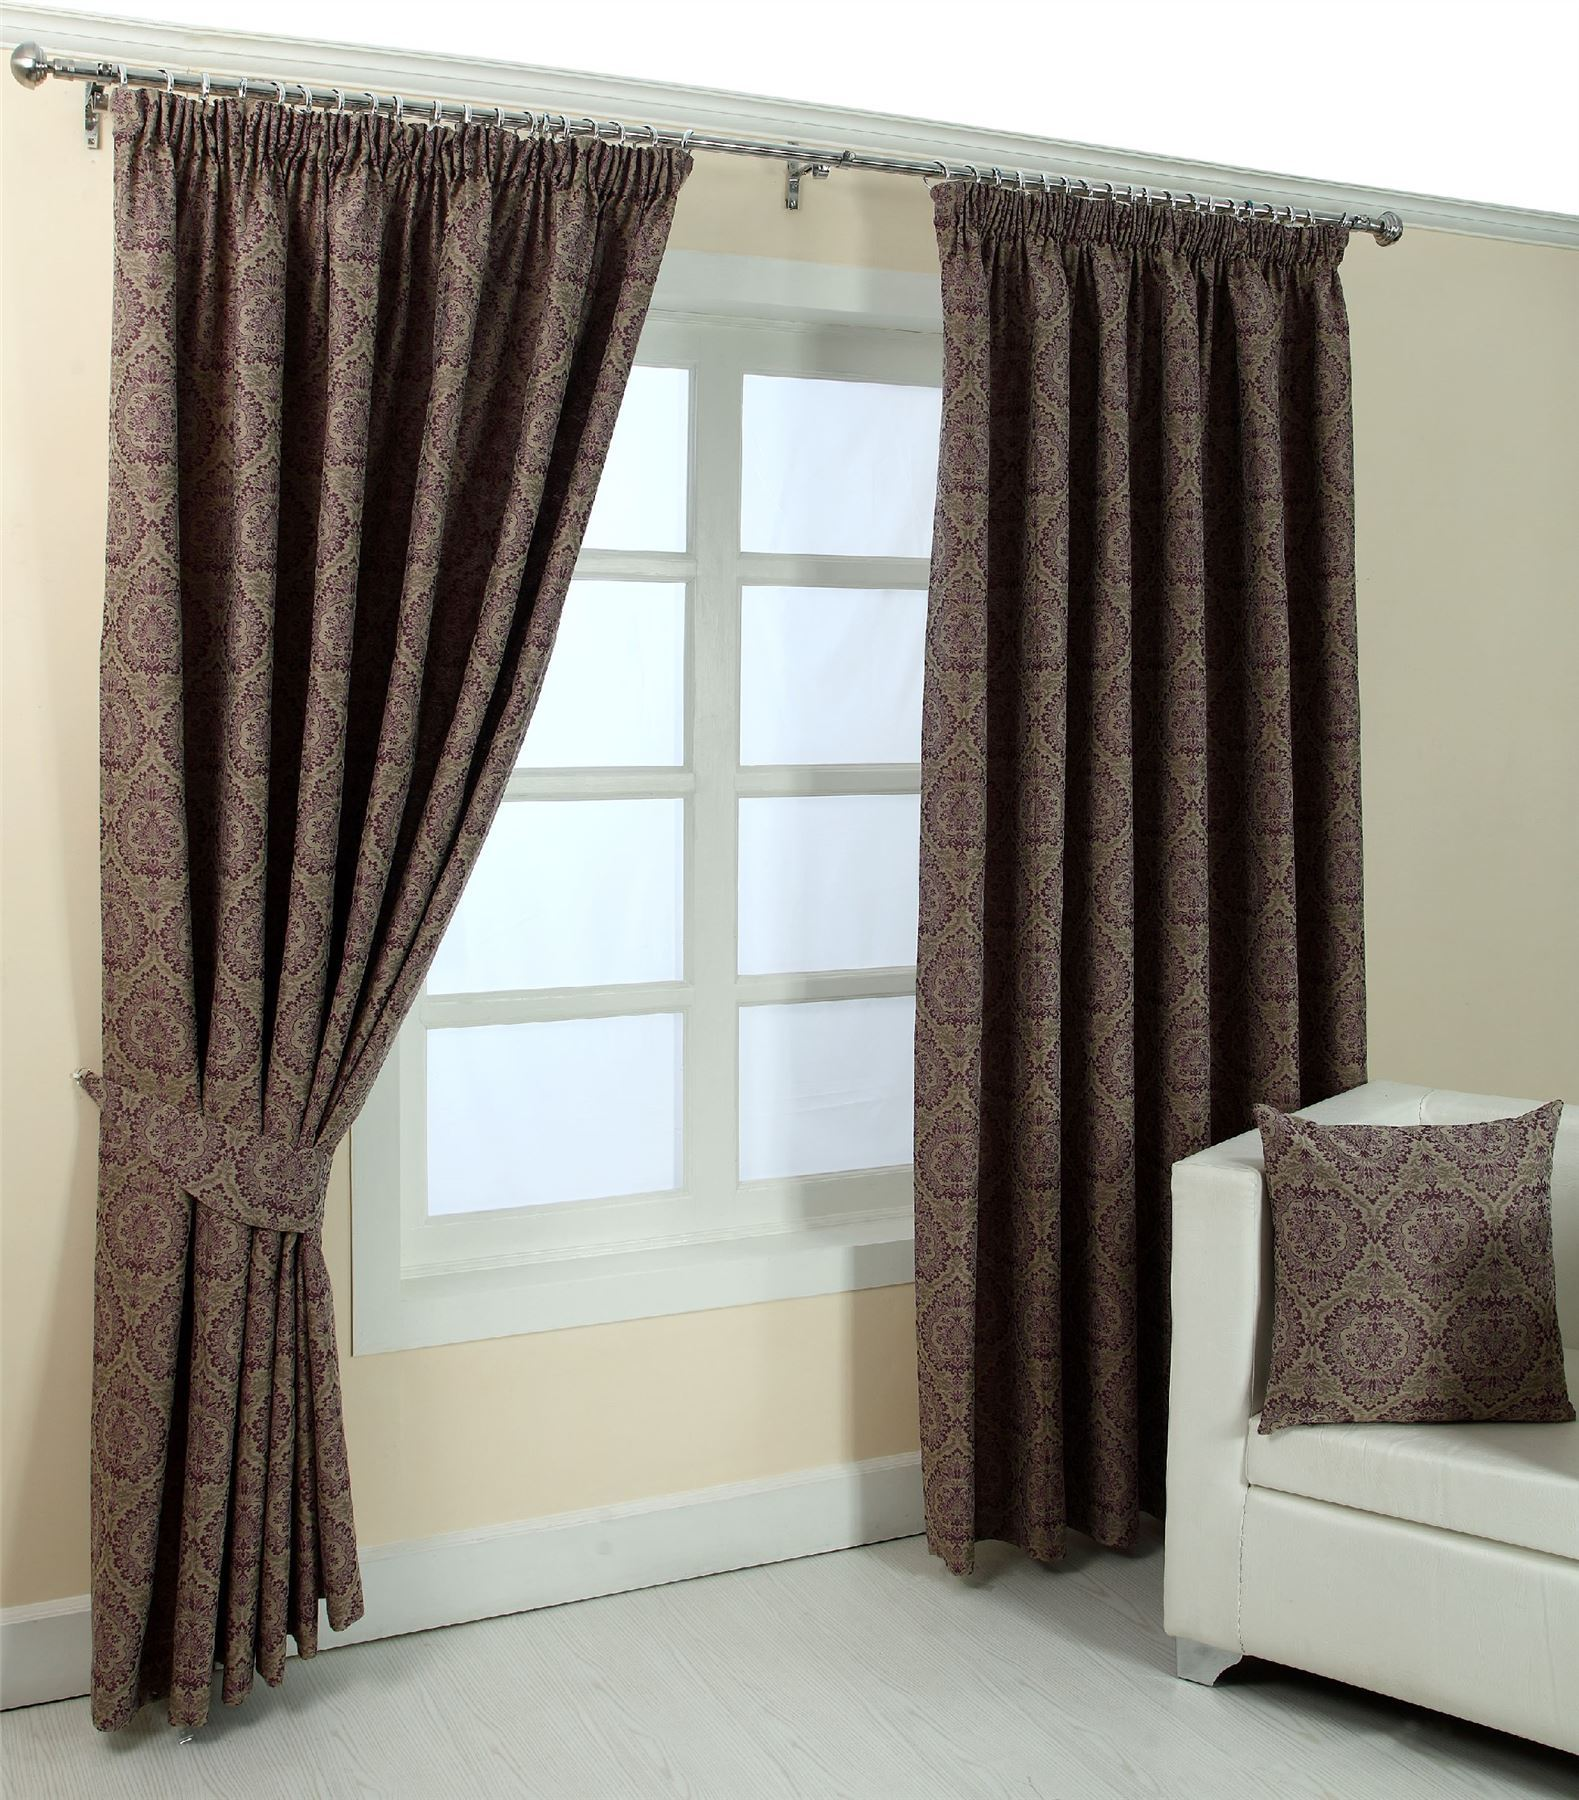 Damask curtains living room - Floral Pencil Pleat Fully Lined Jacquard Damask Curtains